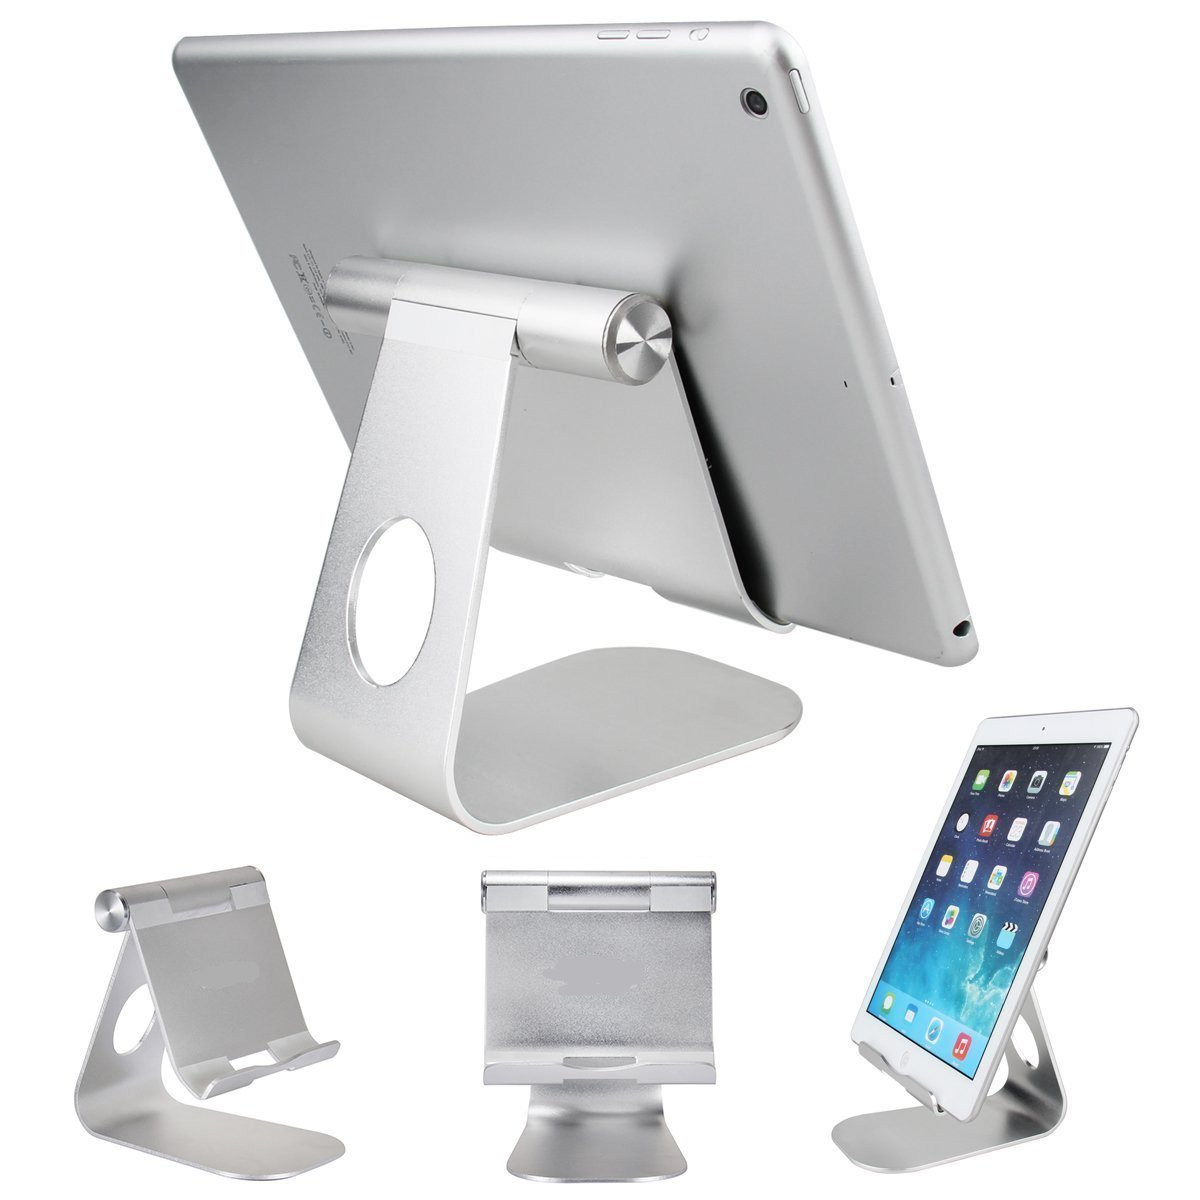 2017 Multi-Angle Portable Aluminum Tablet Stand Holder for iPad Pro mini Samsung Huawei T1 701u kindle E-readers Smartphones